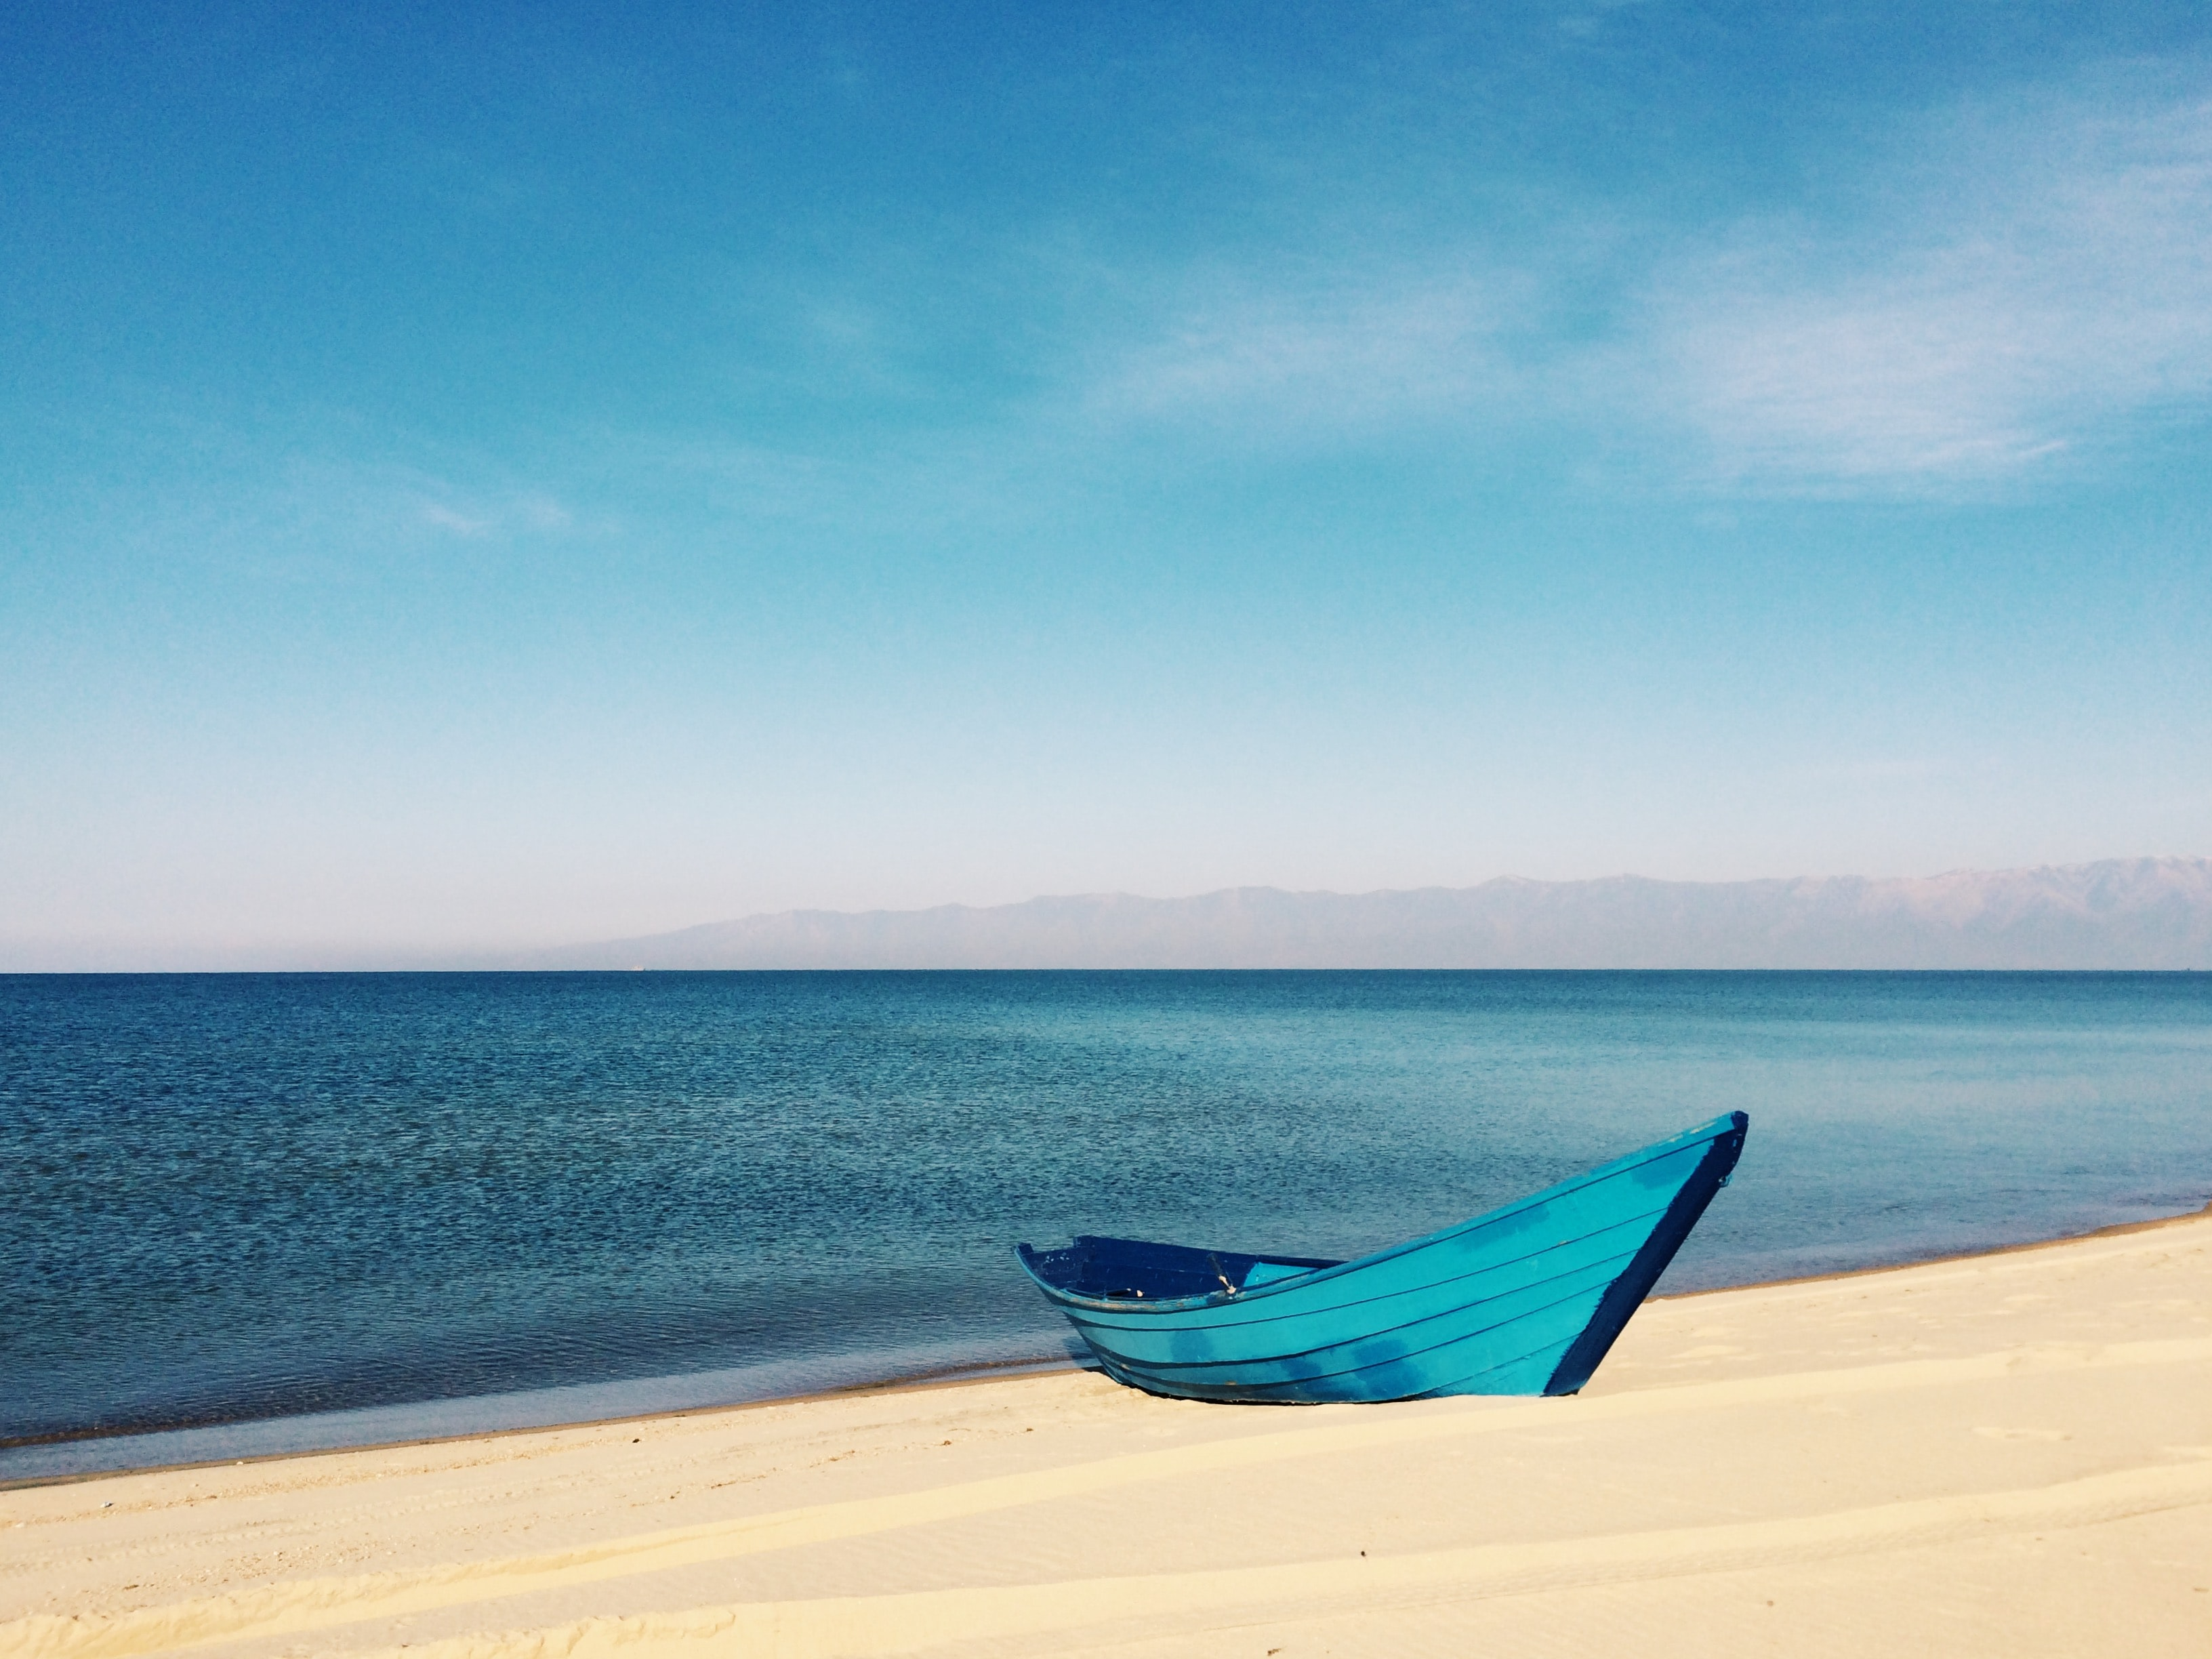 blue boat on sand near body of water during daytime